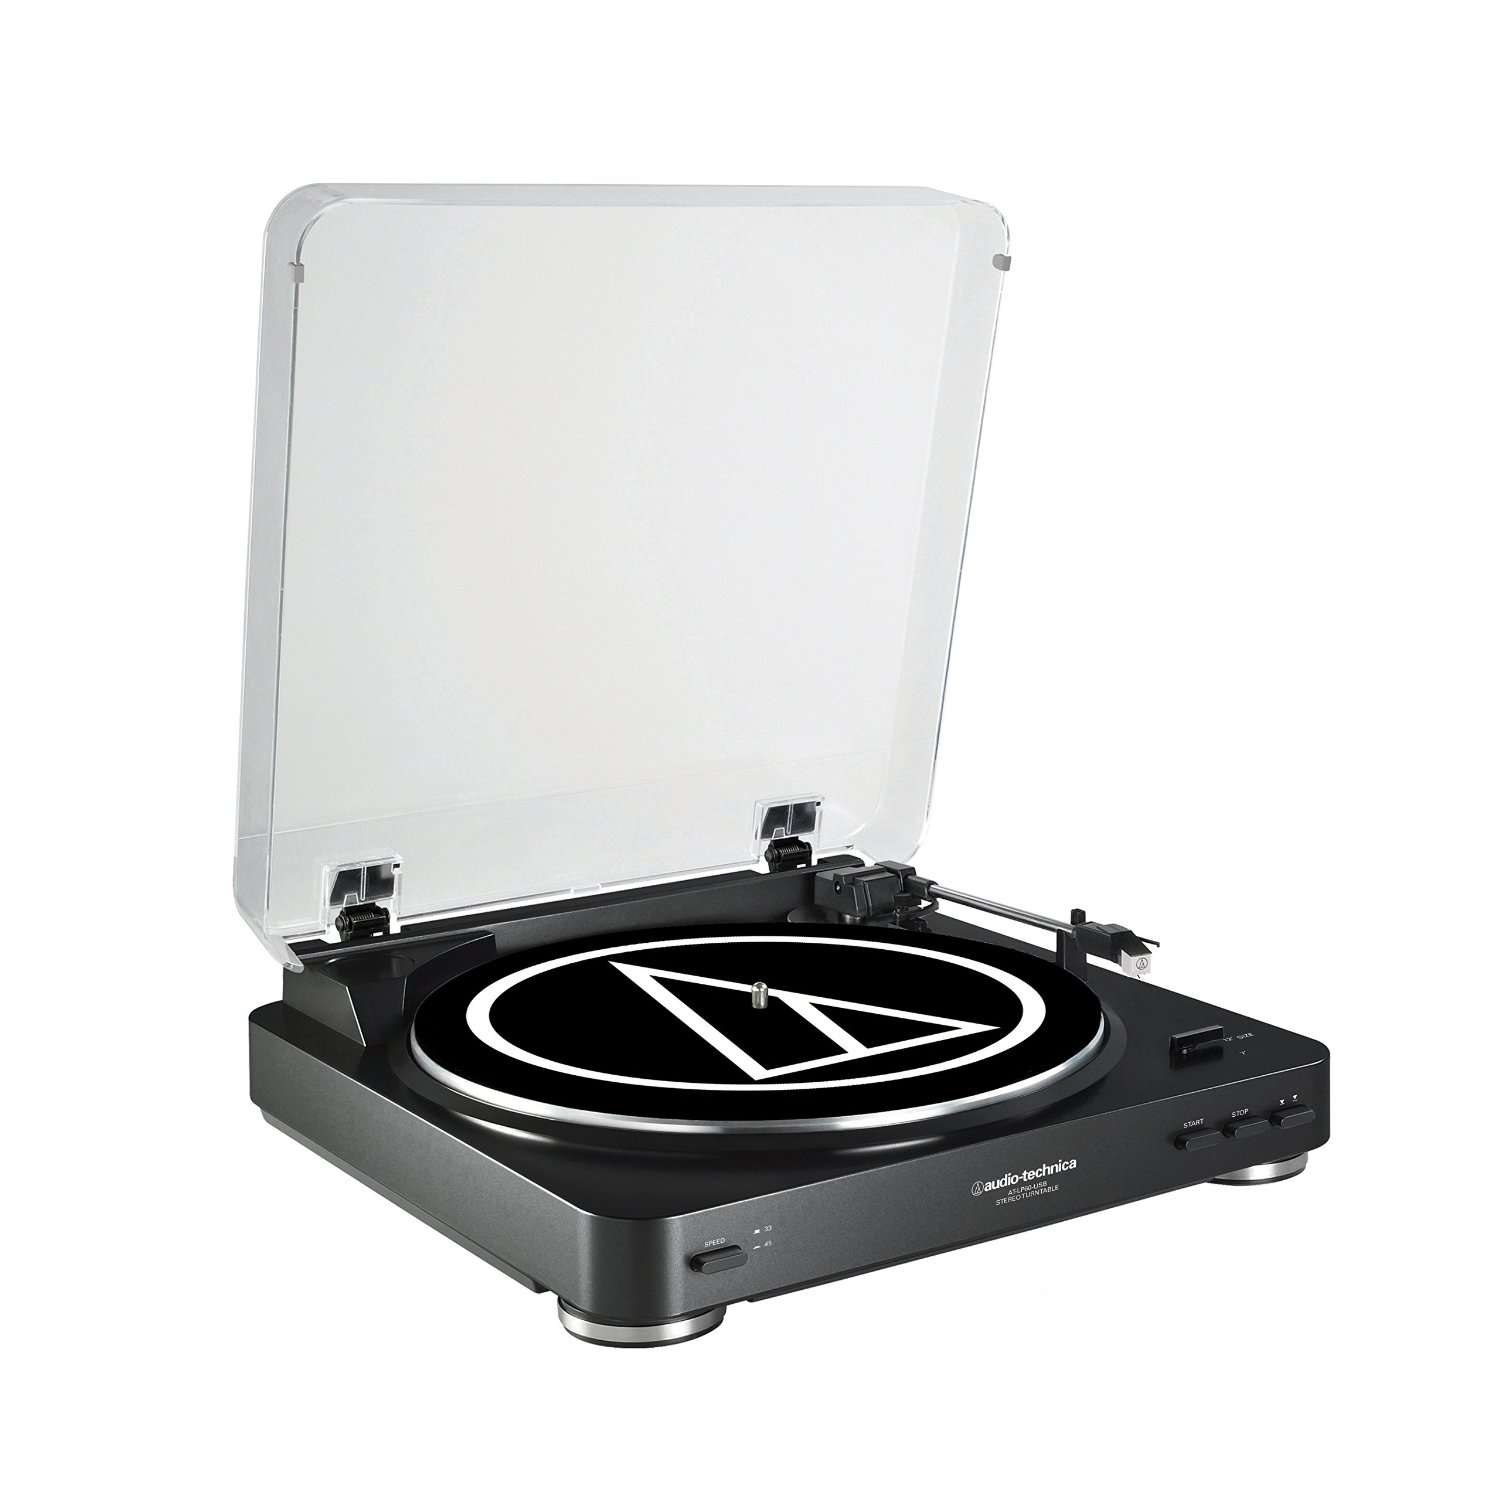 Audio-Technica Fully Automatic Belt-Drive Stereo Turntable (USB & Analog, Black)